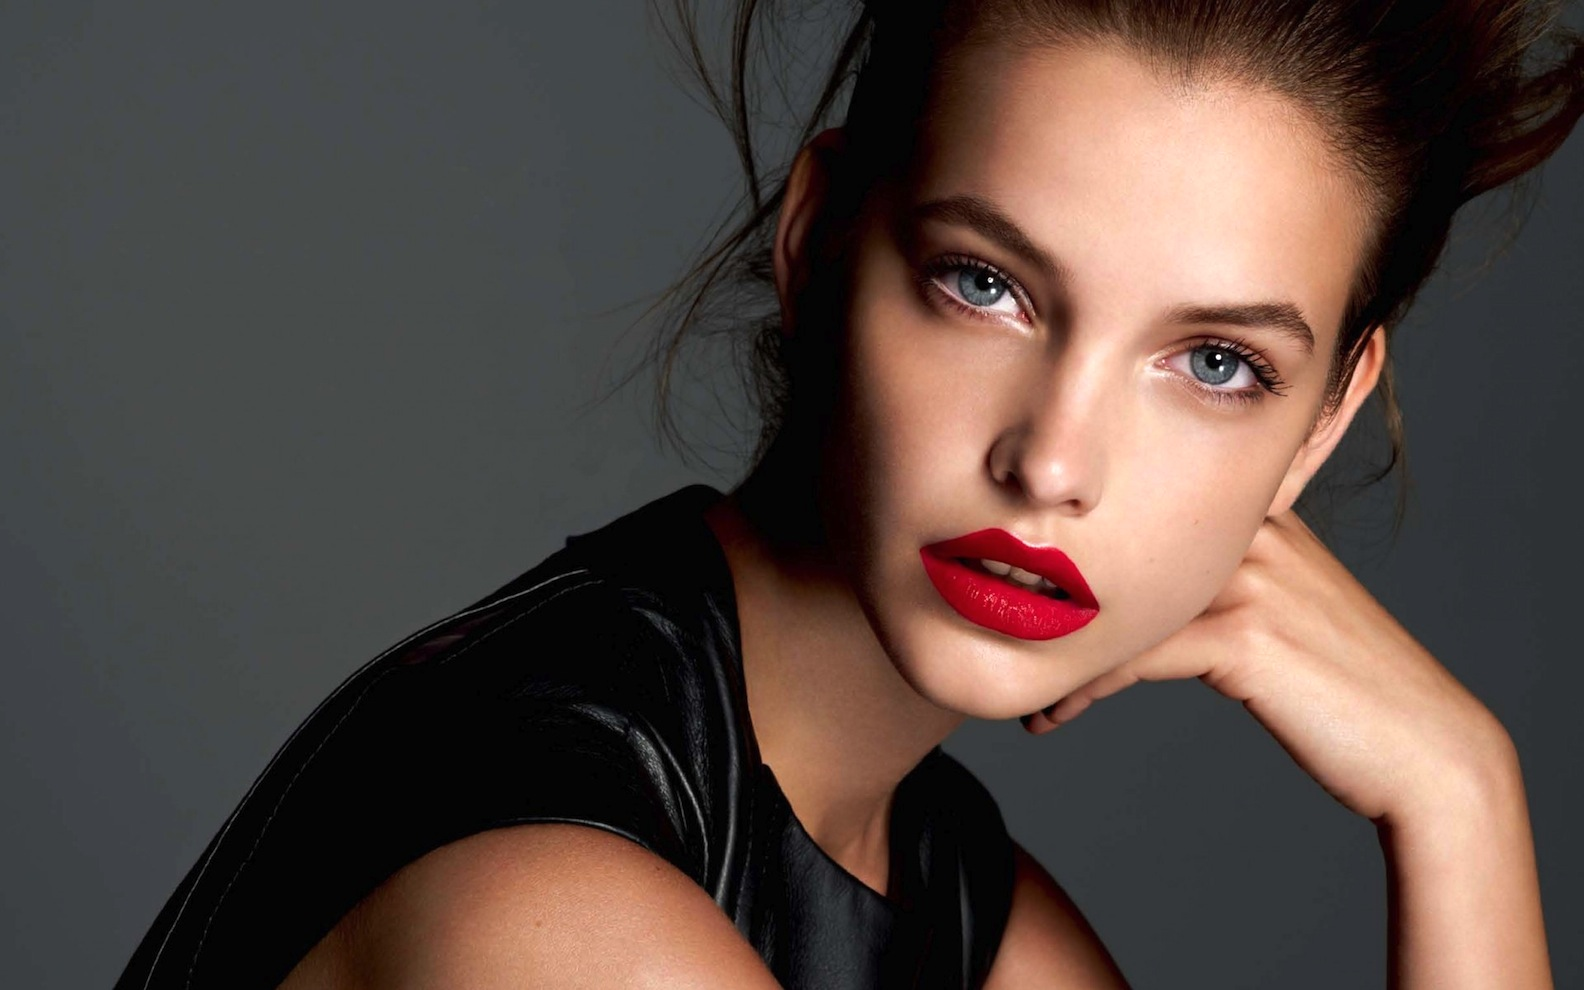 Barbara Palvin Red Lips wallpaper background (1584 x 990 )